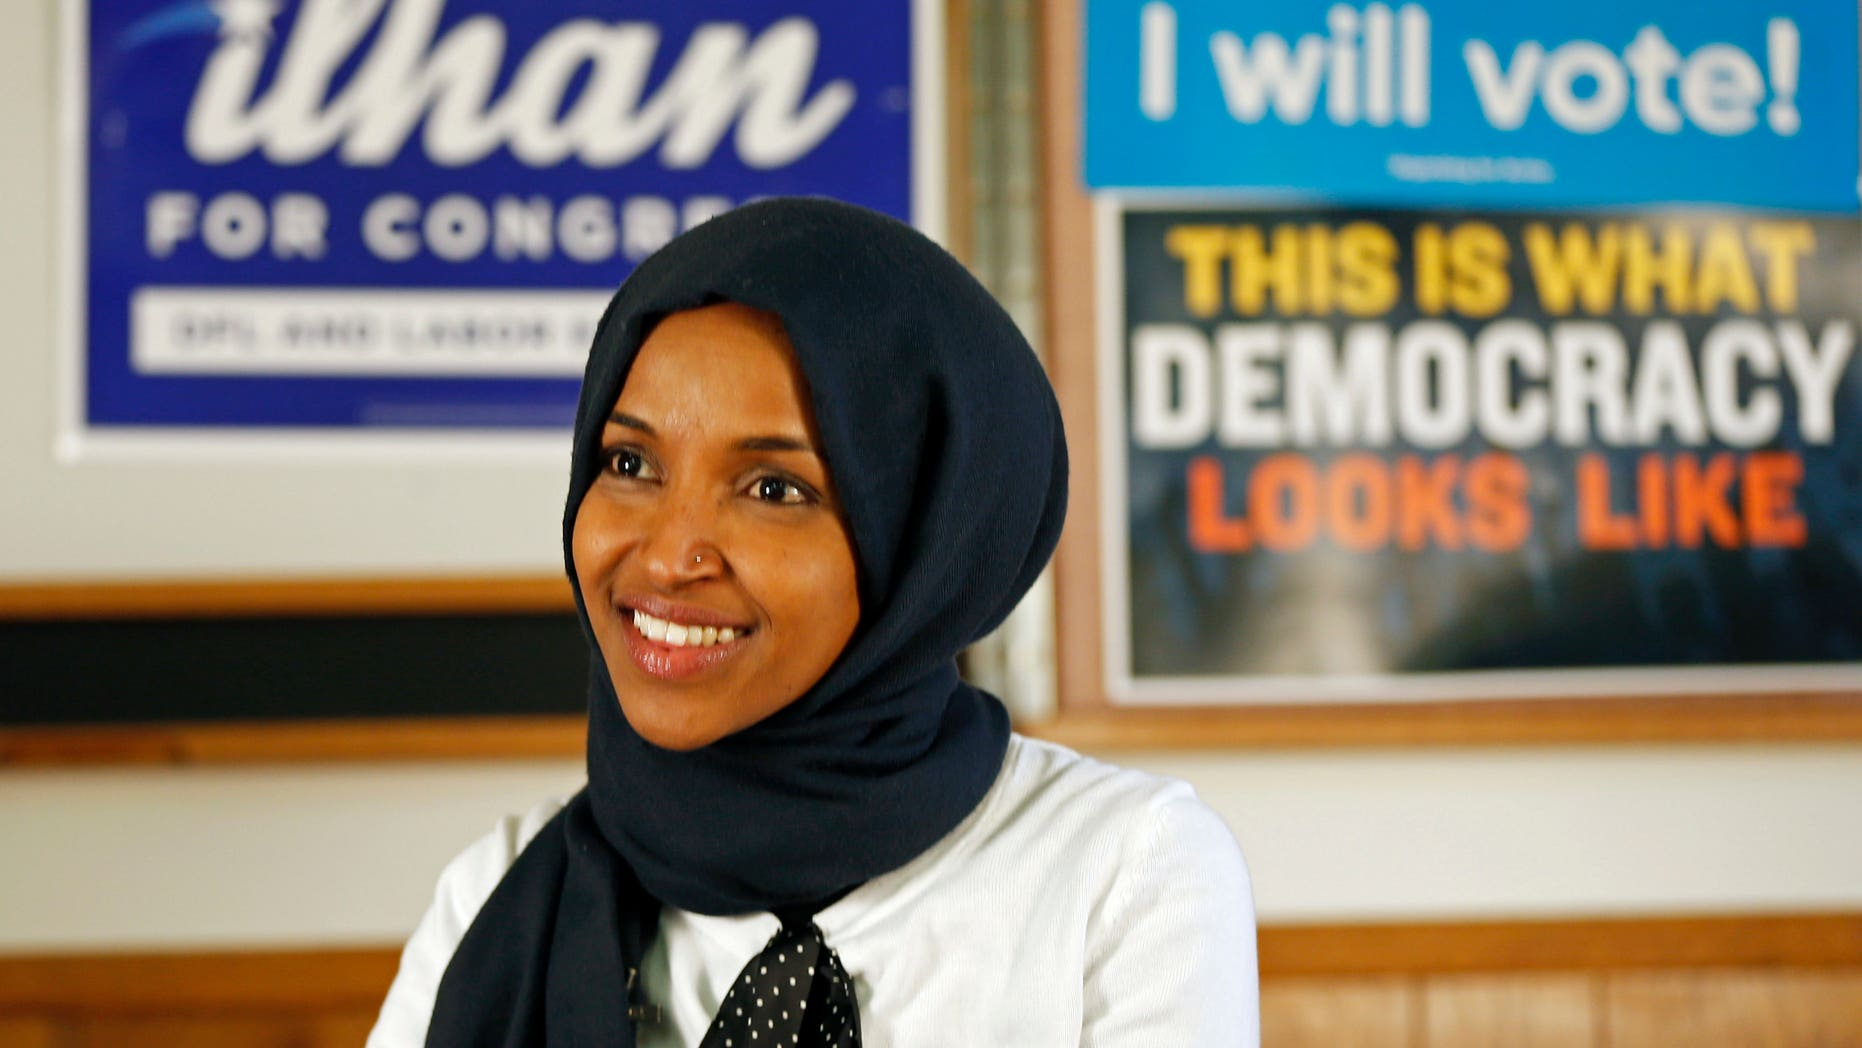 House Democrats, including Rep-elect Ilhan Omar, are hoping to amend the181-year-old rule against wearing hats on the House floor to allow for religious headwear, including headscarves.